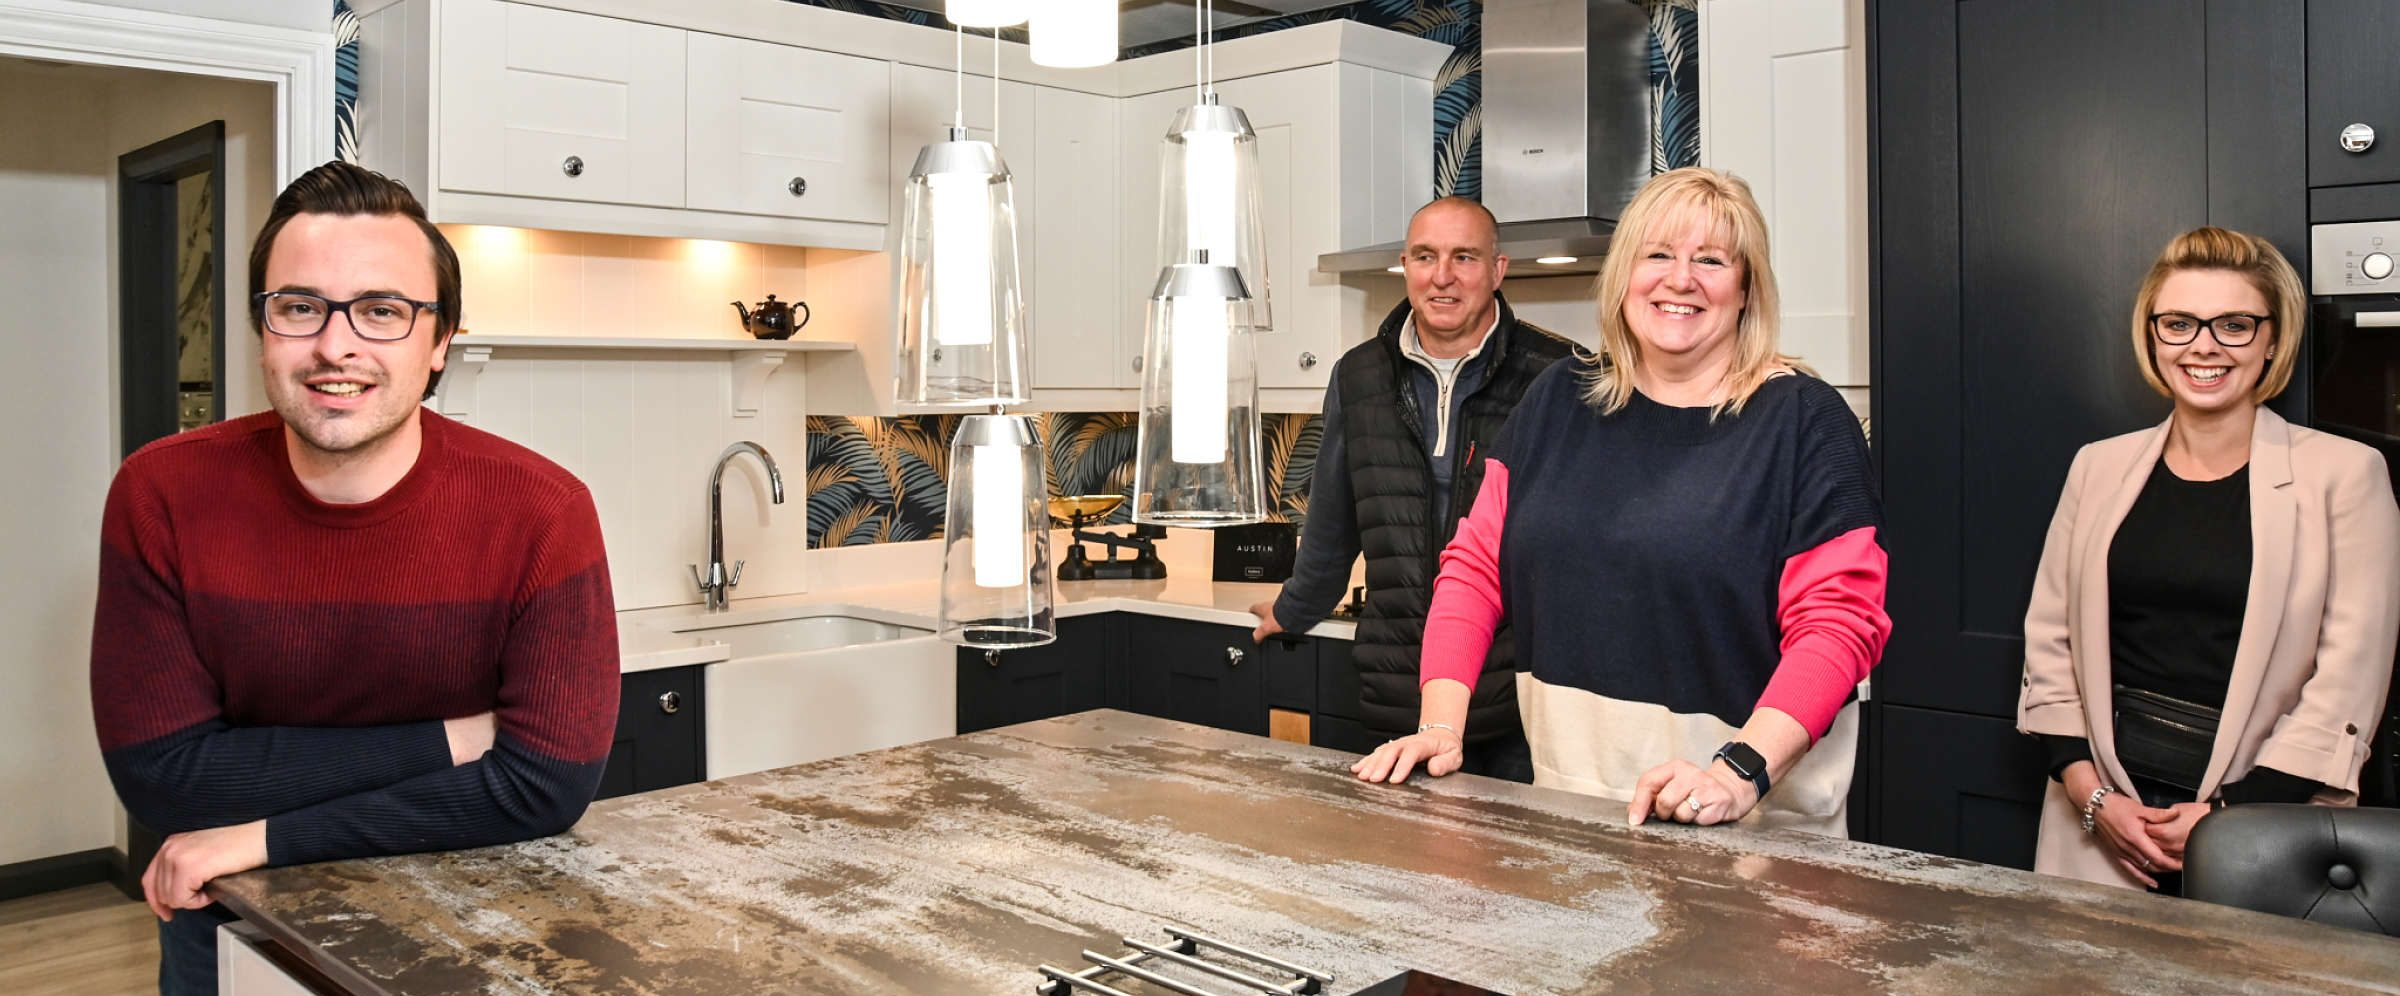 kitchen showroom staff are on hand to answer questions or let you browse in peace